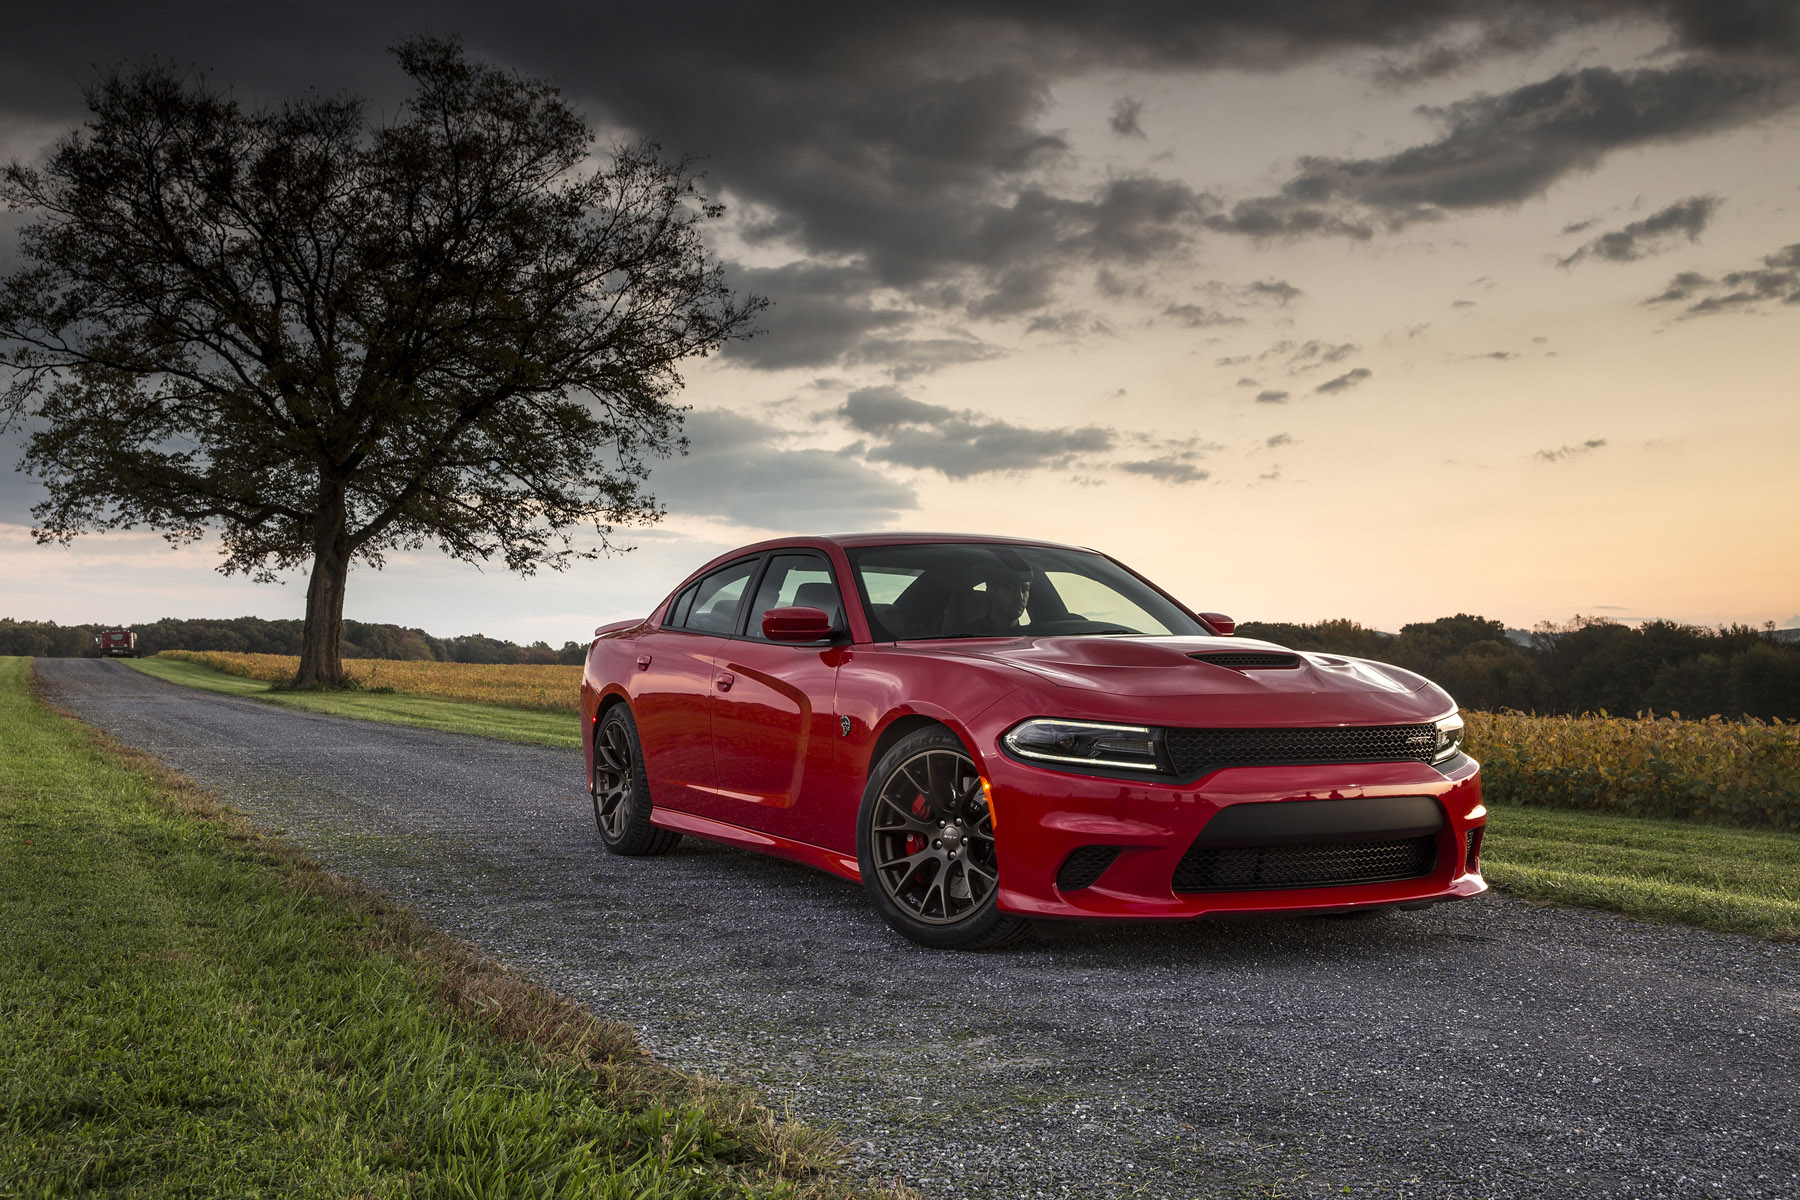 Find Latest dodge charger srt hellcat red Ideas. We